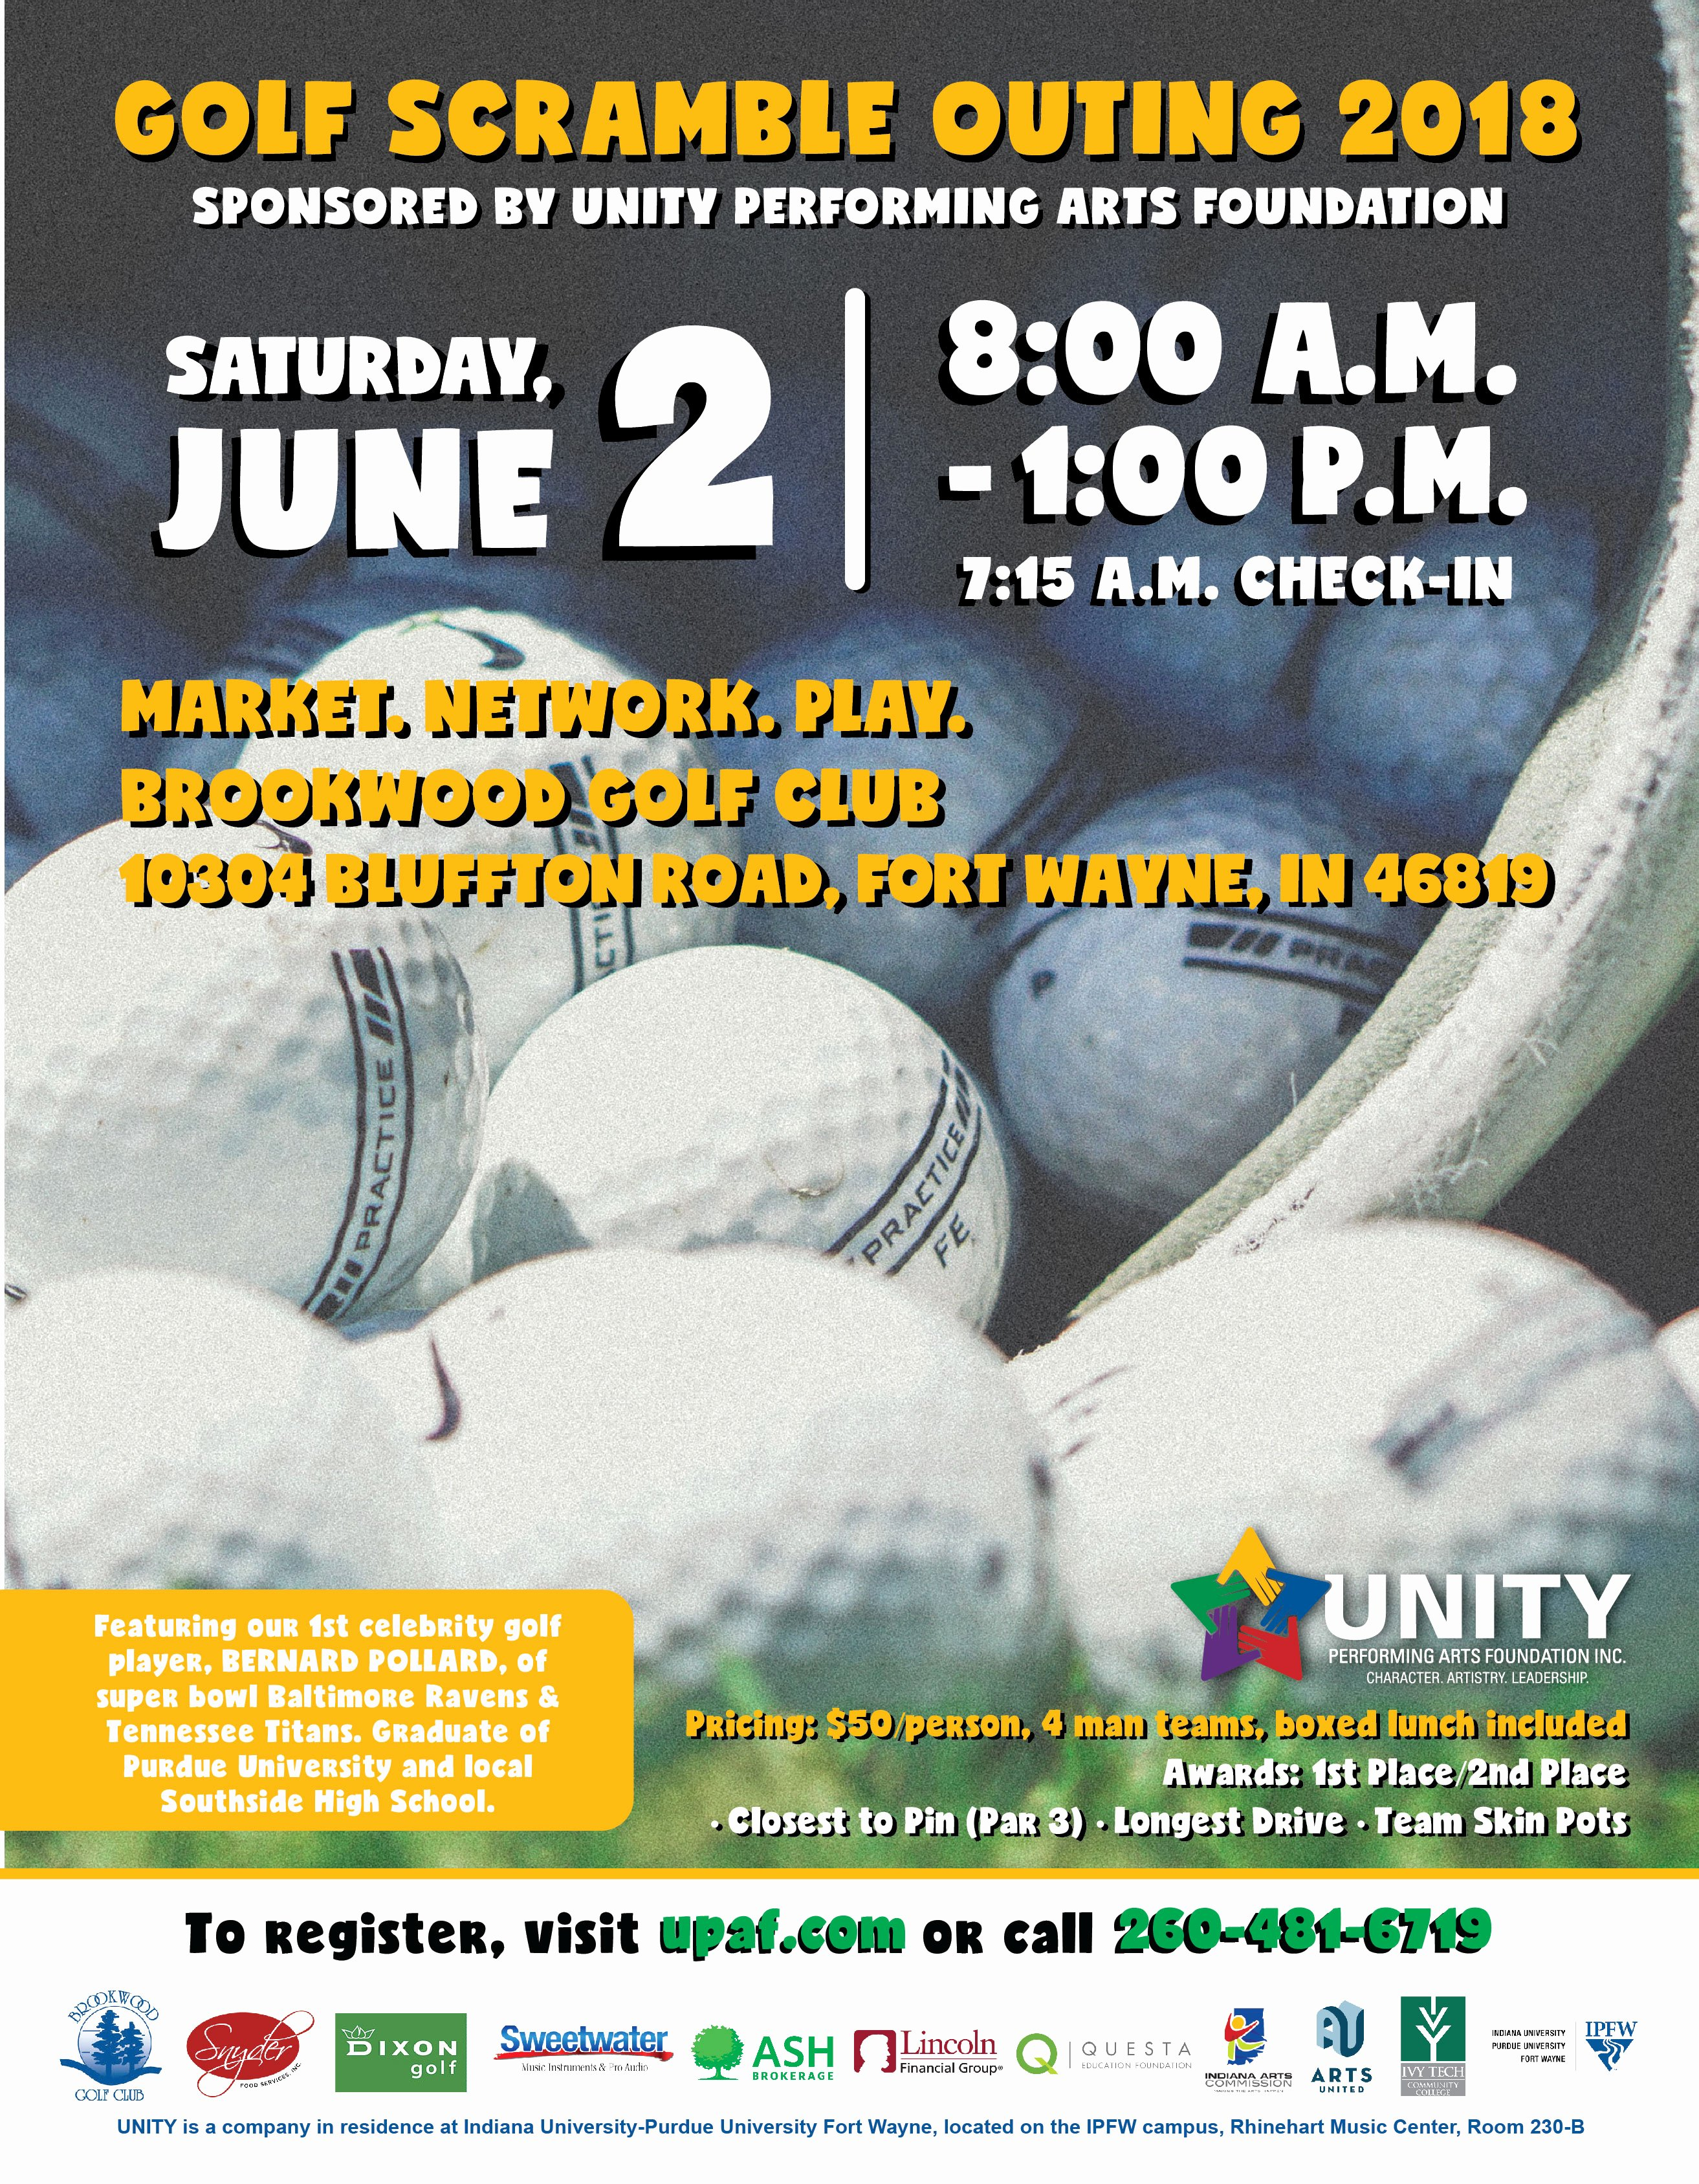 Golf Scramble Flyer Template Unique Unity Performing Arts Foundation 18 Golf Scramble Flyer 01